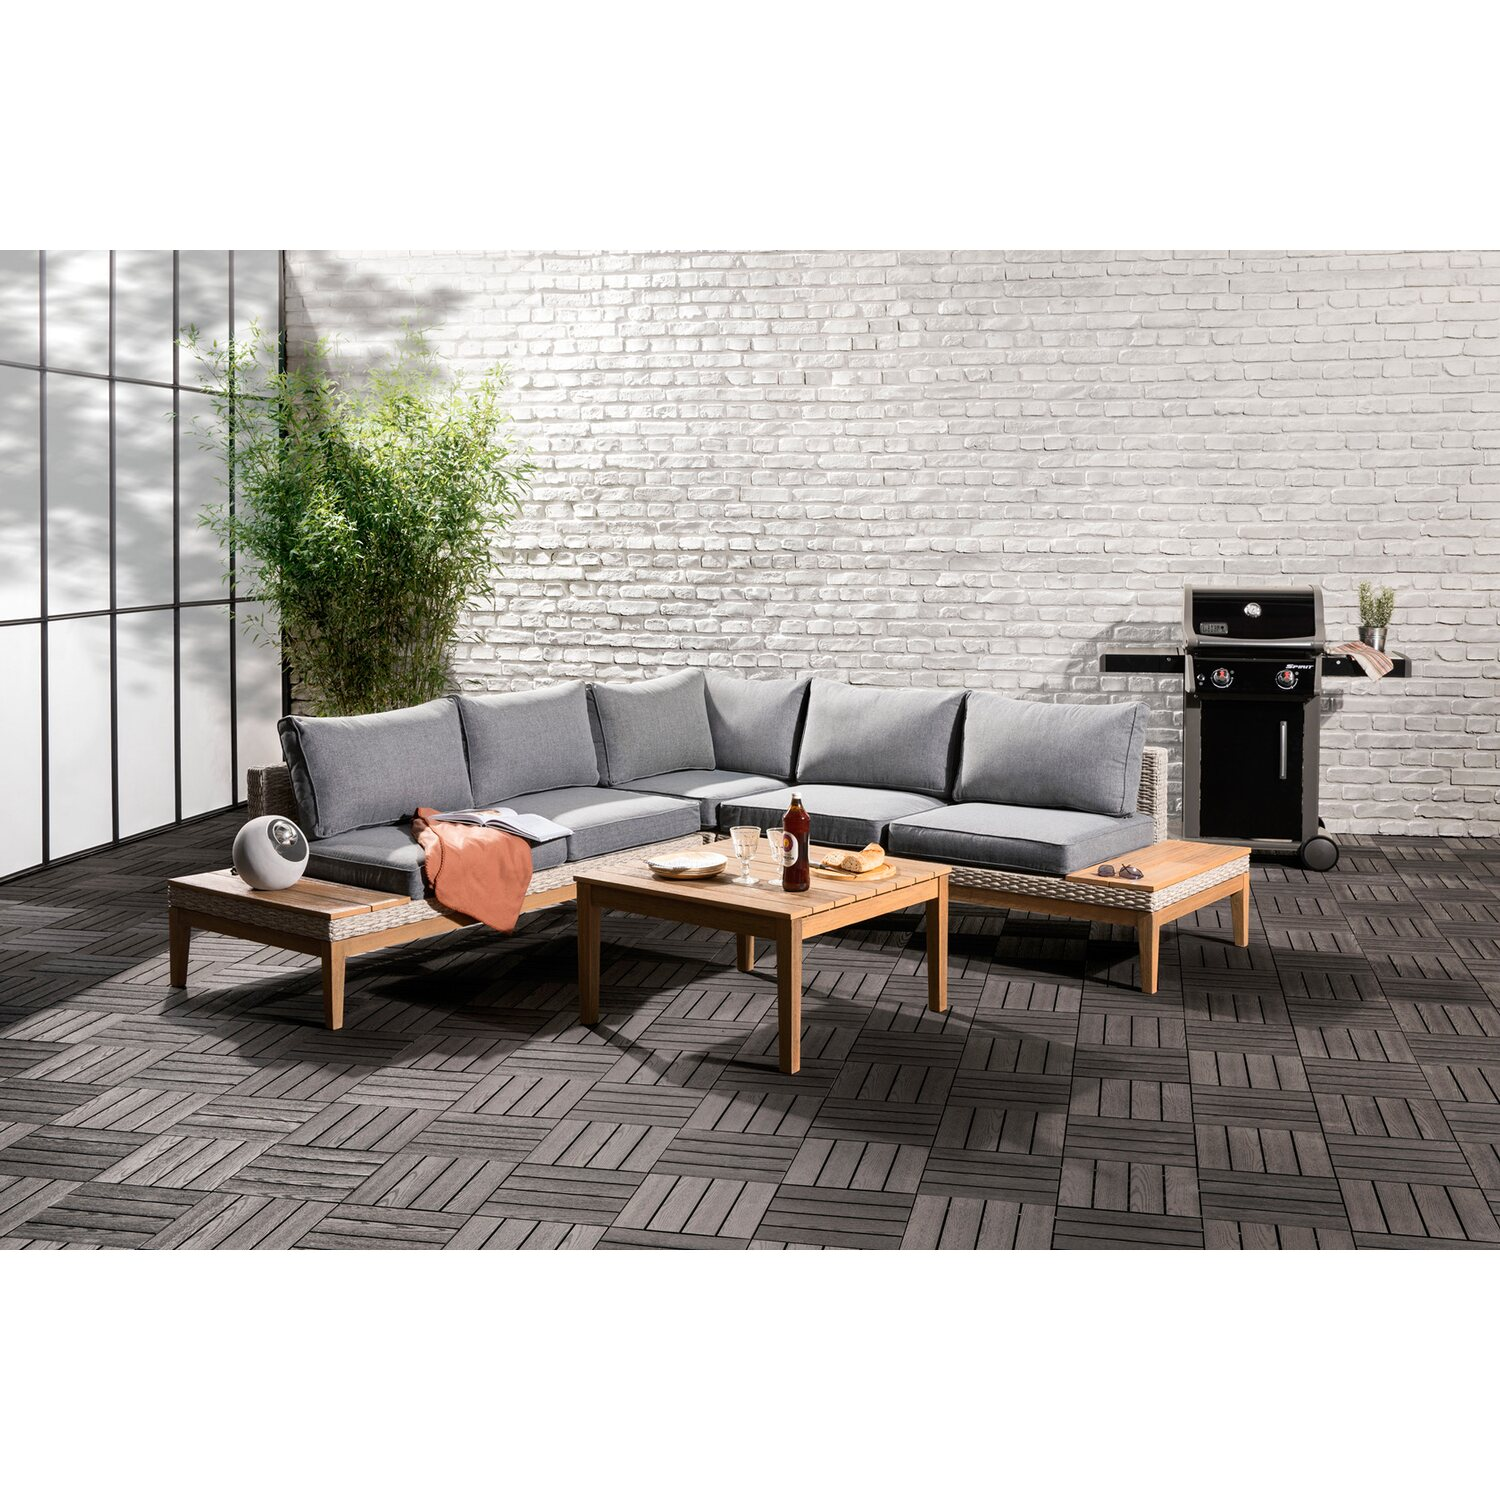 obi lounge gruppe hamerson fossil polyrattan eukalyptus 4. Black Bedroom Furniture Sets. Home Design Ideas